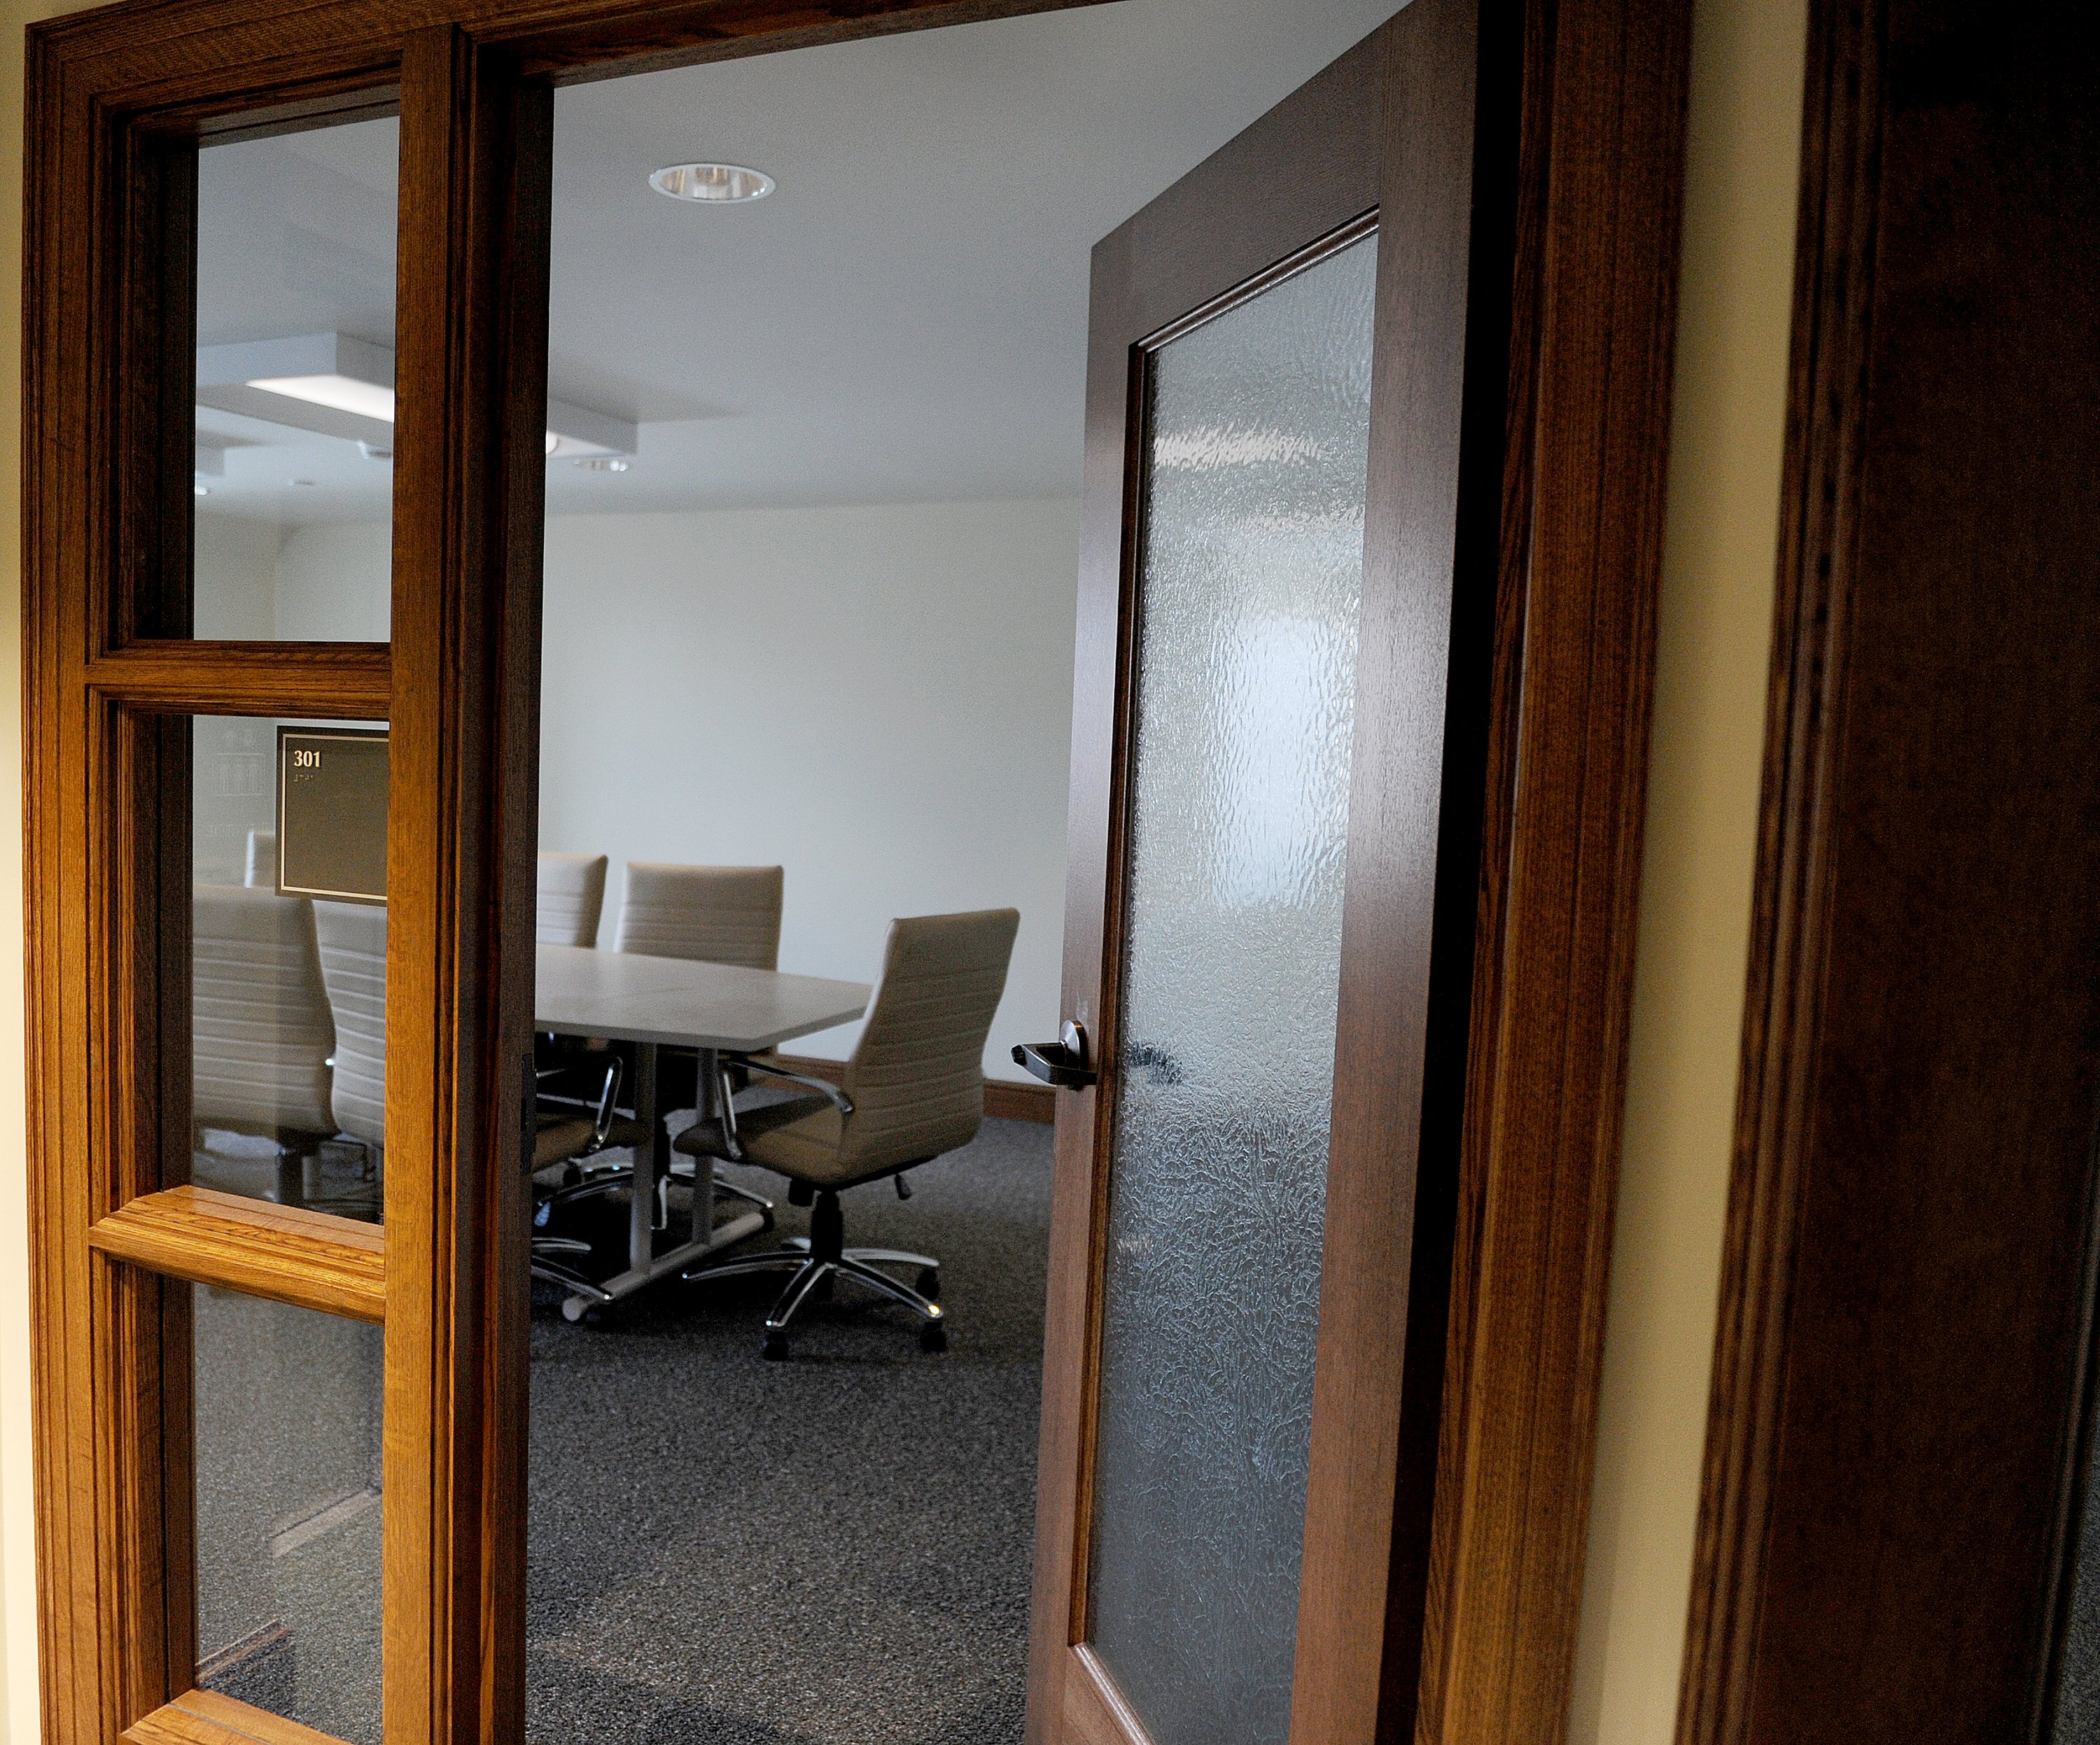 One of the new conference rooms at Hildreth-Mirza Hall at Bucknell University.